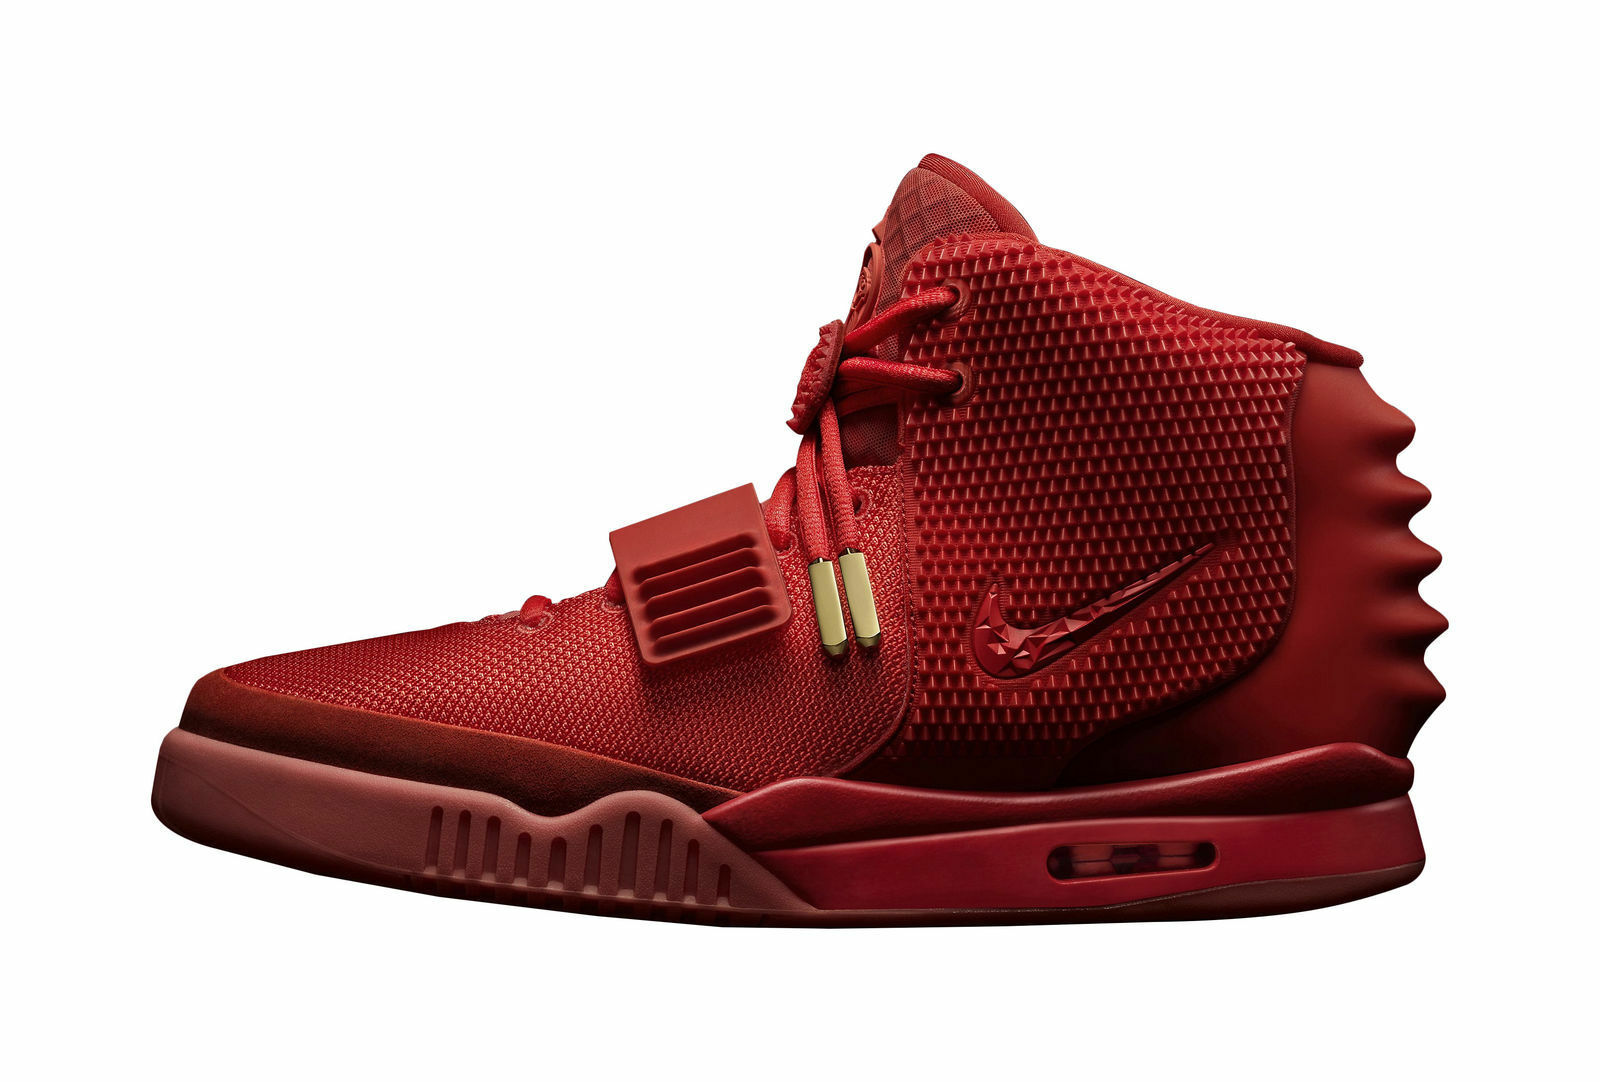 Nike Air Yeezy 2 Red October Kanye West Size 10 With Receipt 100 ... c7326636f